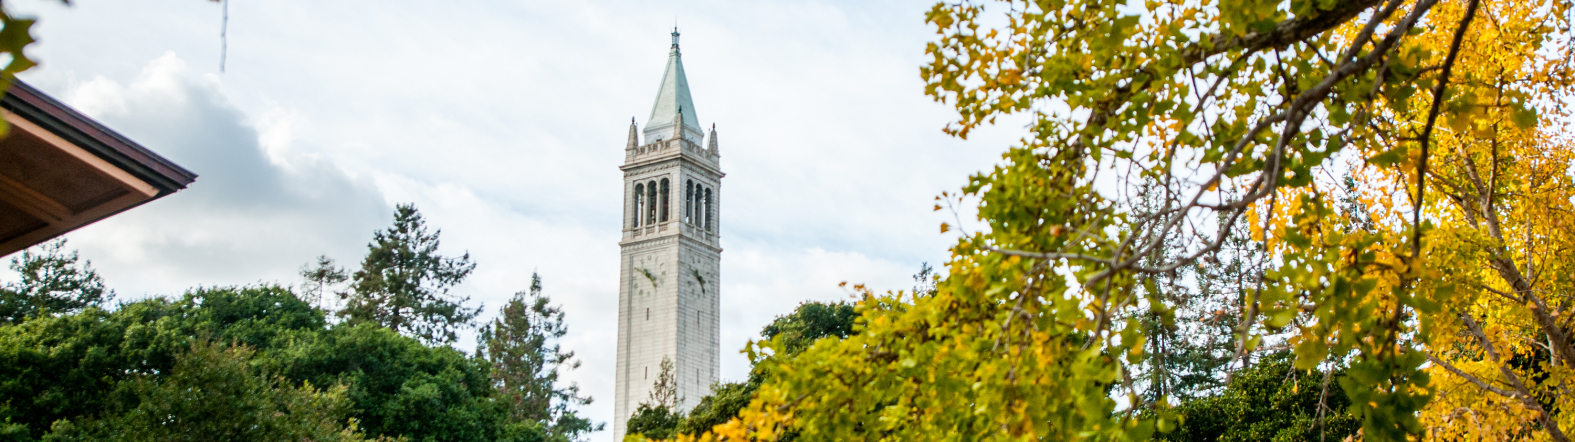 image of the campanile through trees with yellow flowers